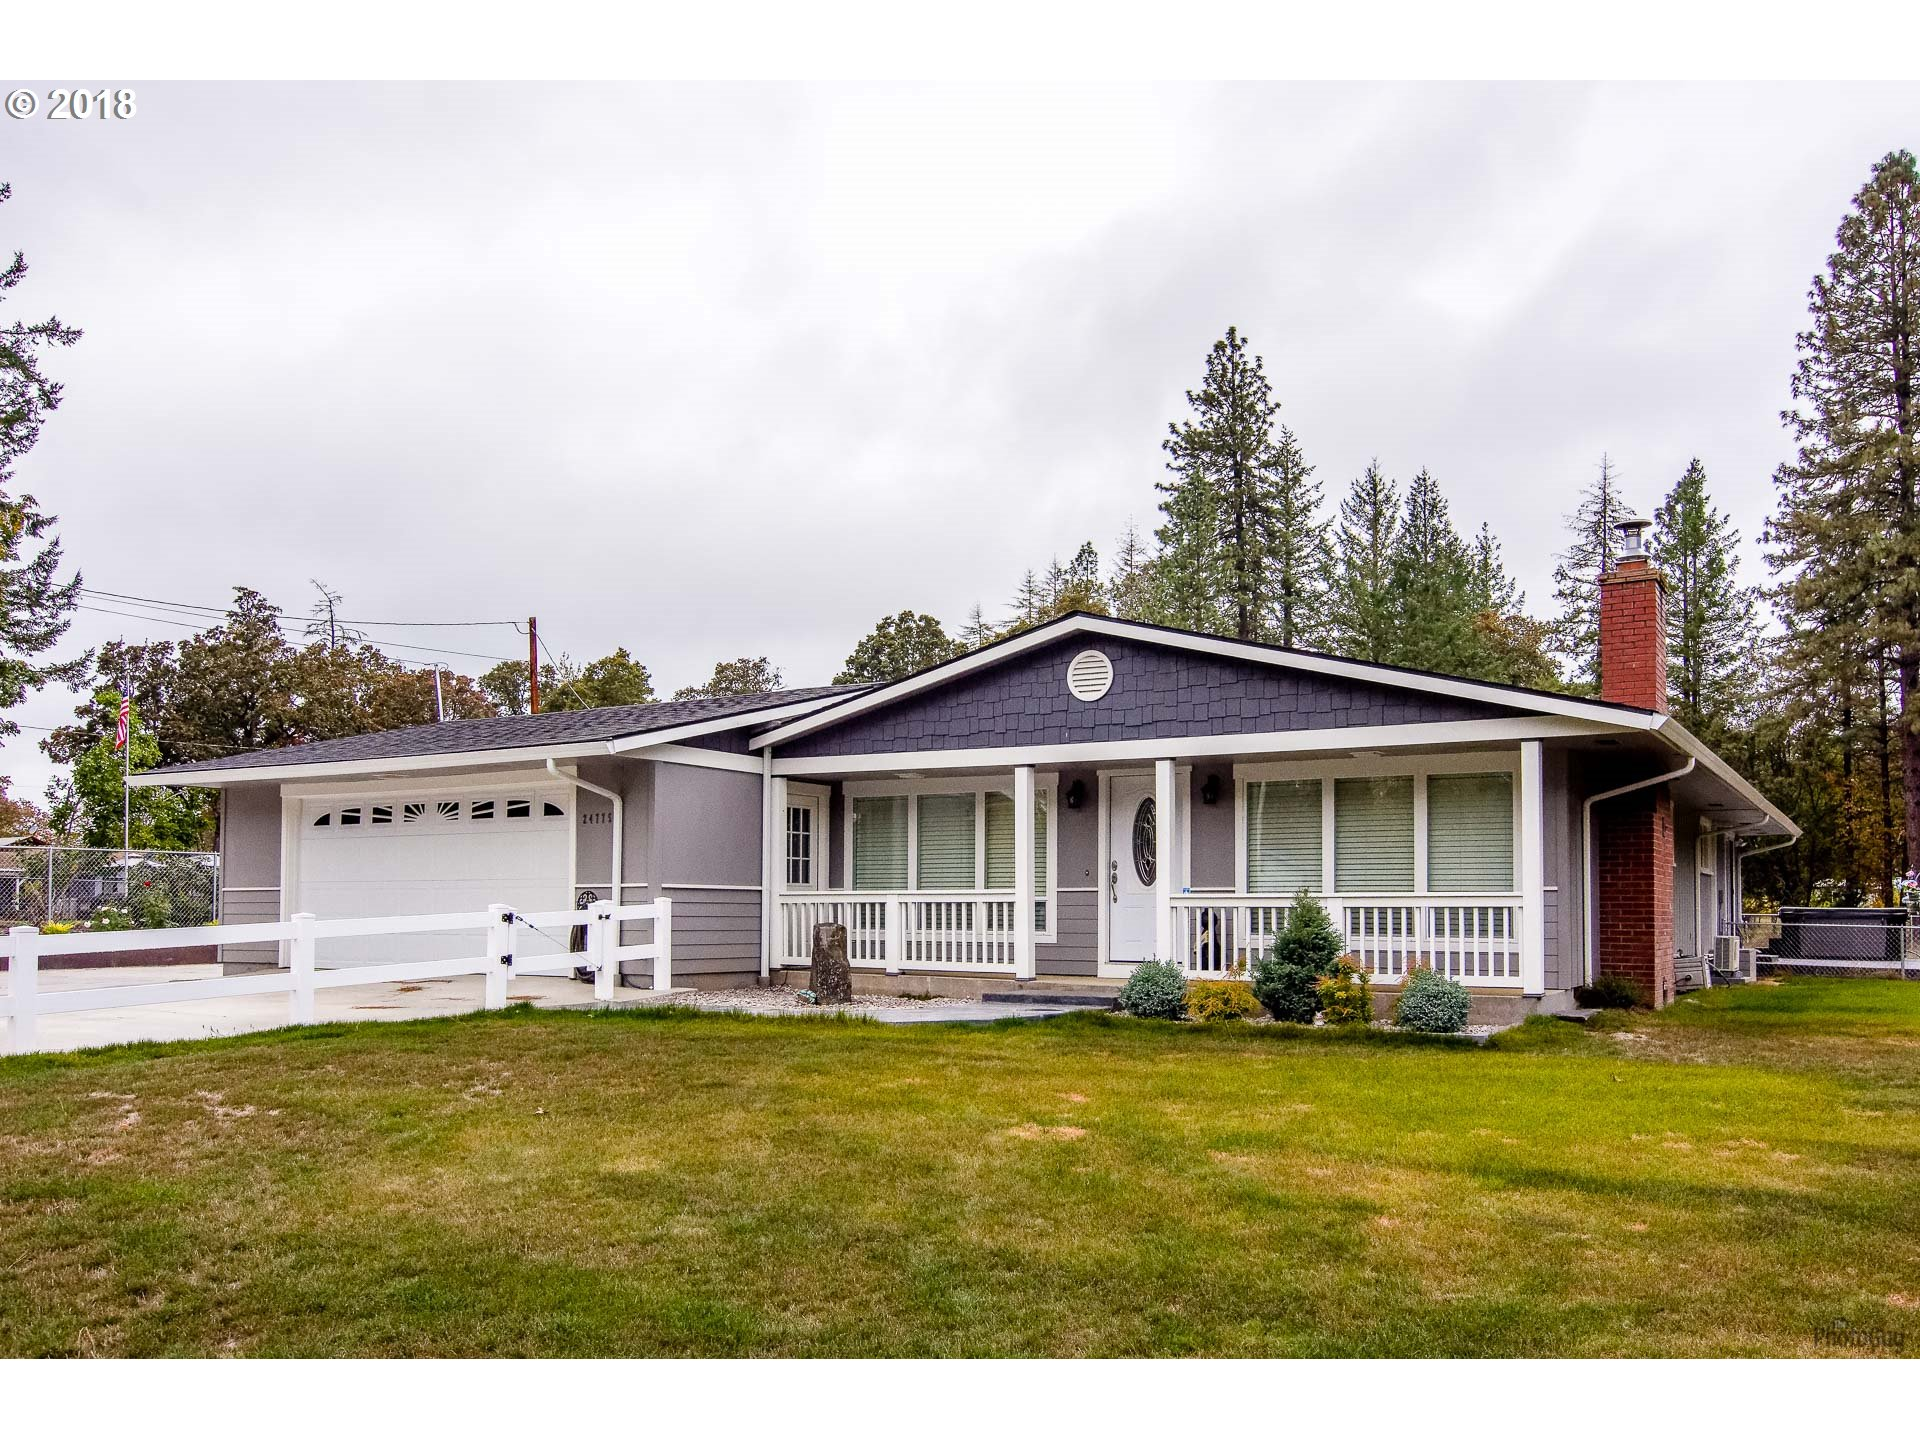 1624 sq. ft 3 bedrooms 1 bathrooms  House For Sale,Elmira, OR